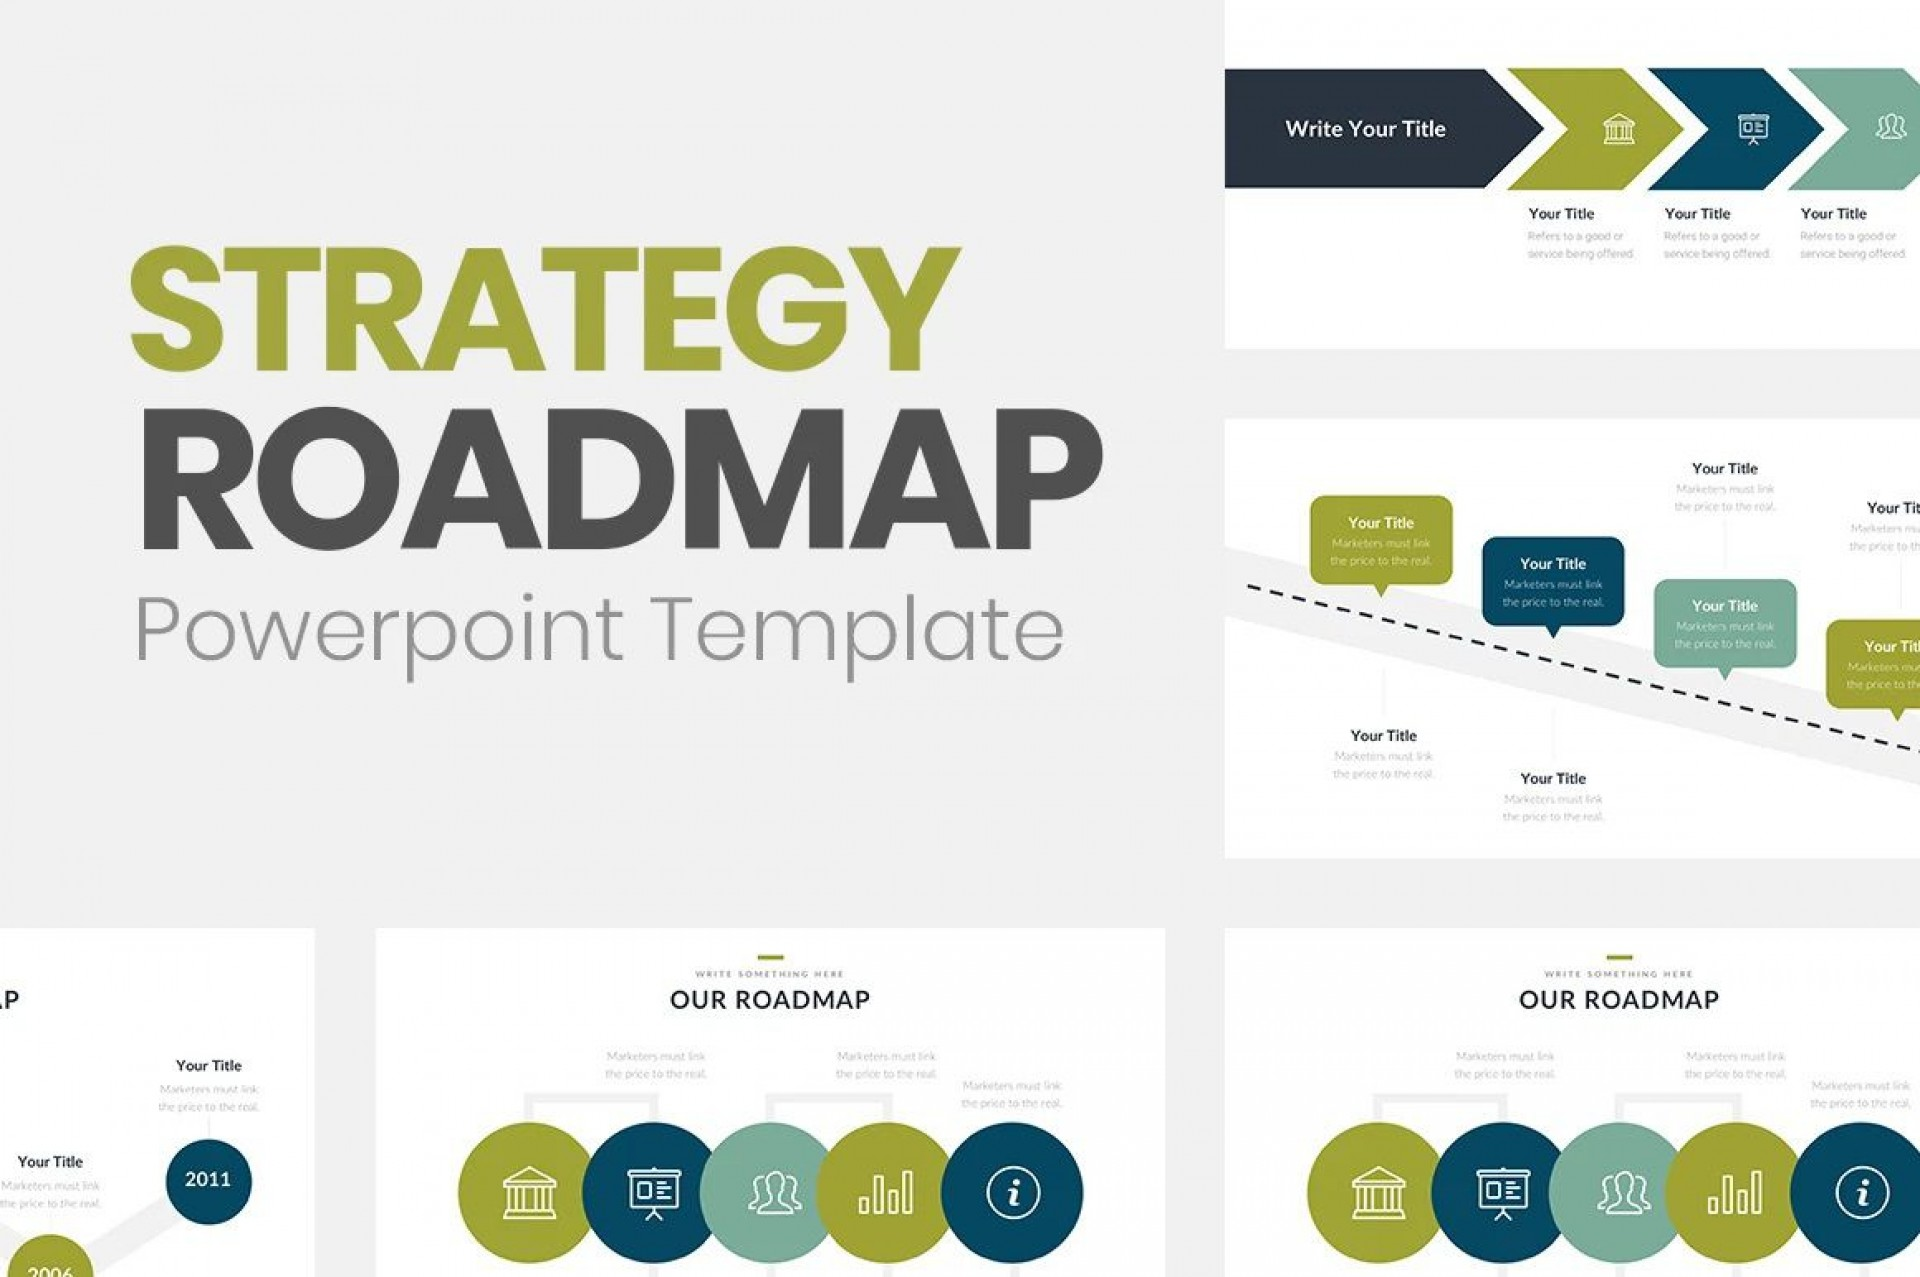 006 Frightening Road Map Template Powerpoint Picture  Roadmap Ppt Free Download Product1920